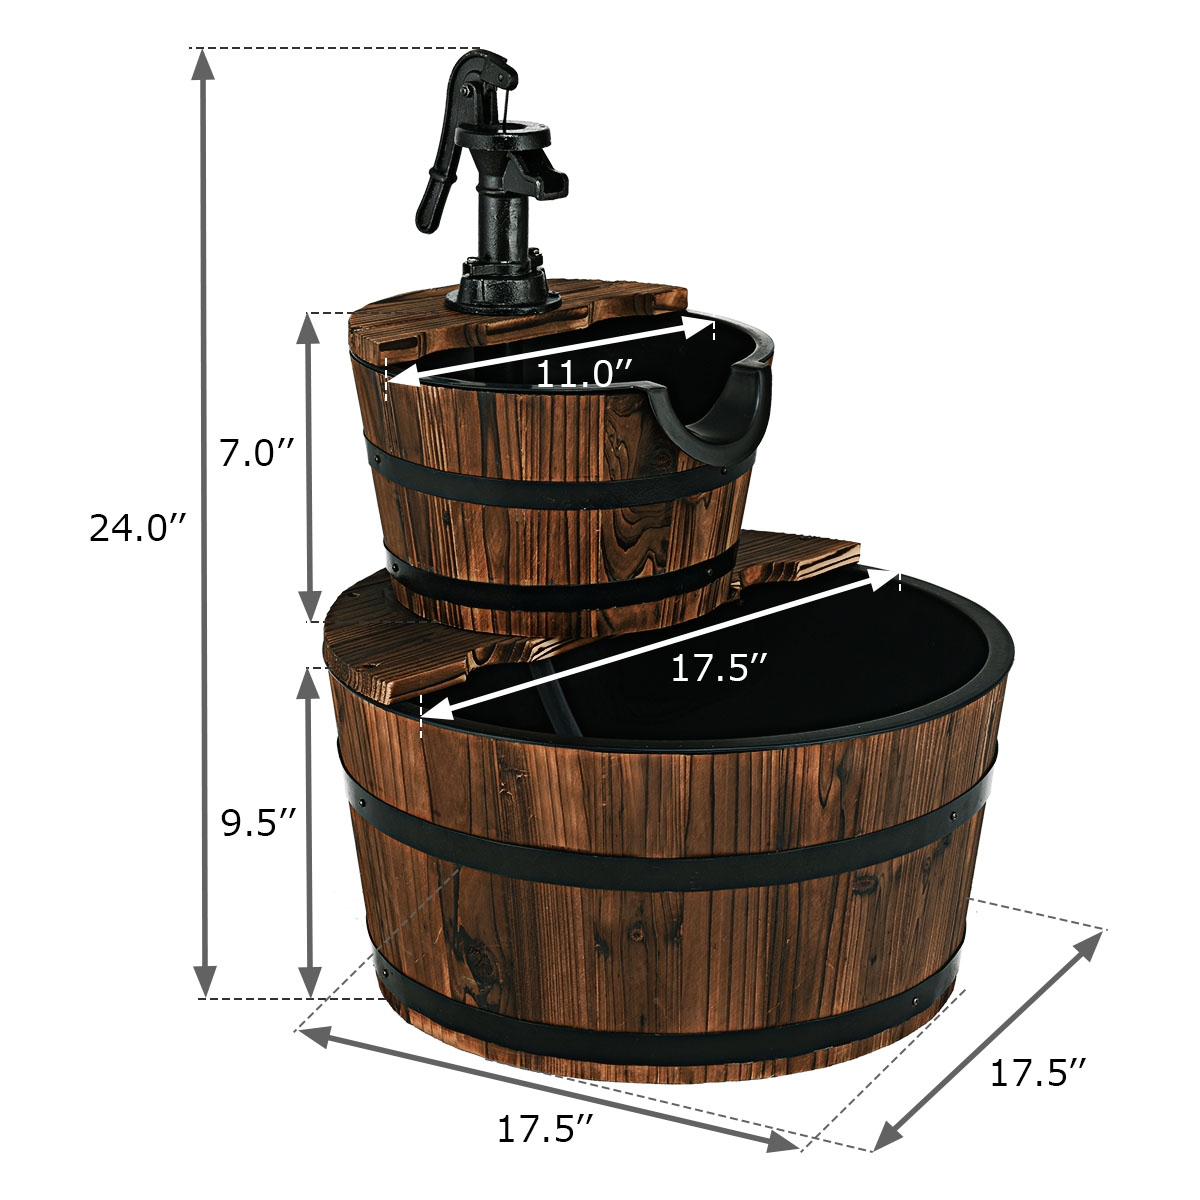 2 Tiers Outdoor Wooden Barrel Waterfall Fountain with Pump